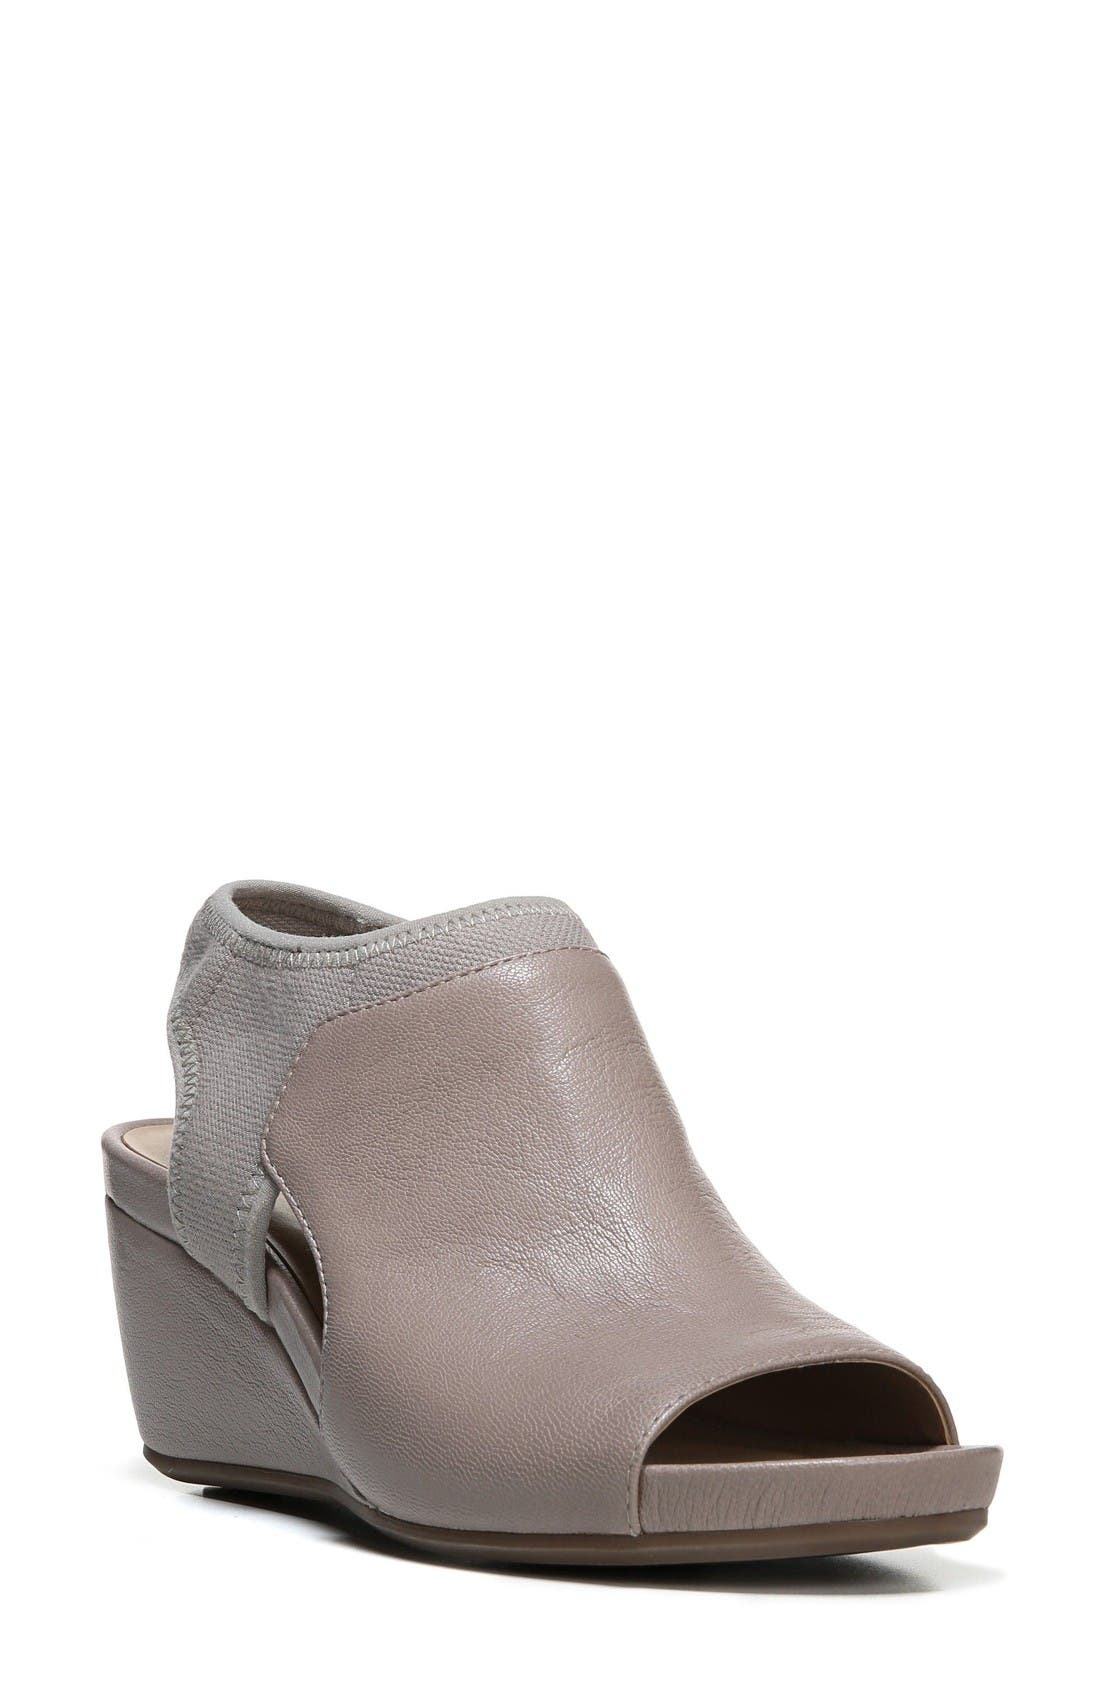 Cailla Shield Sandal,                         Main,                         color, Grey Leather